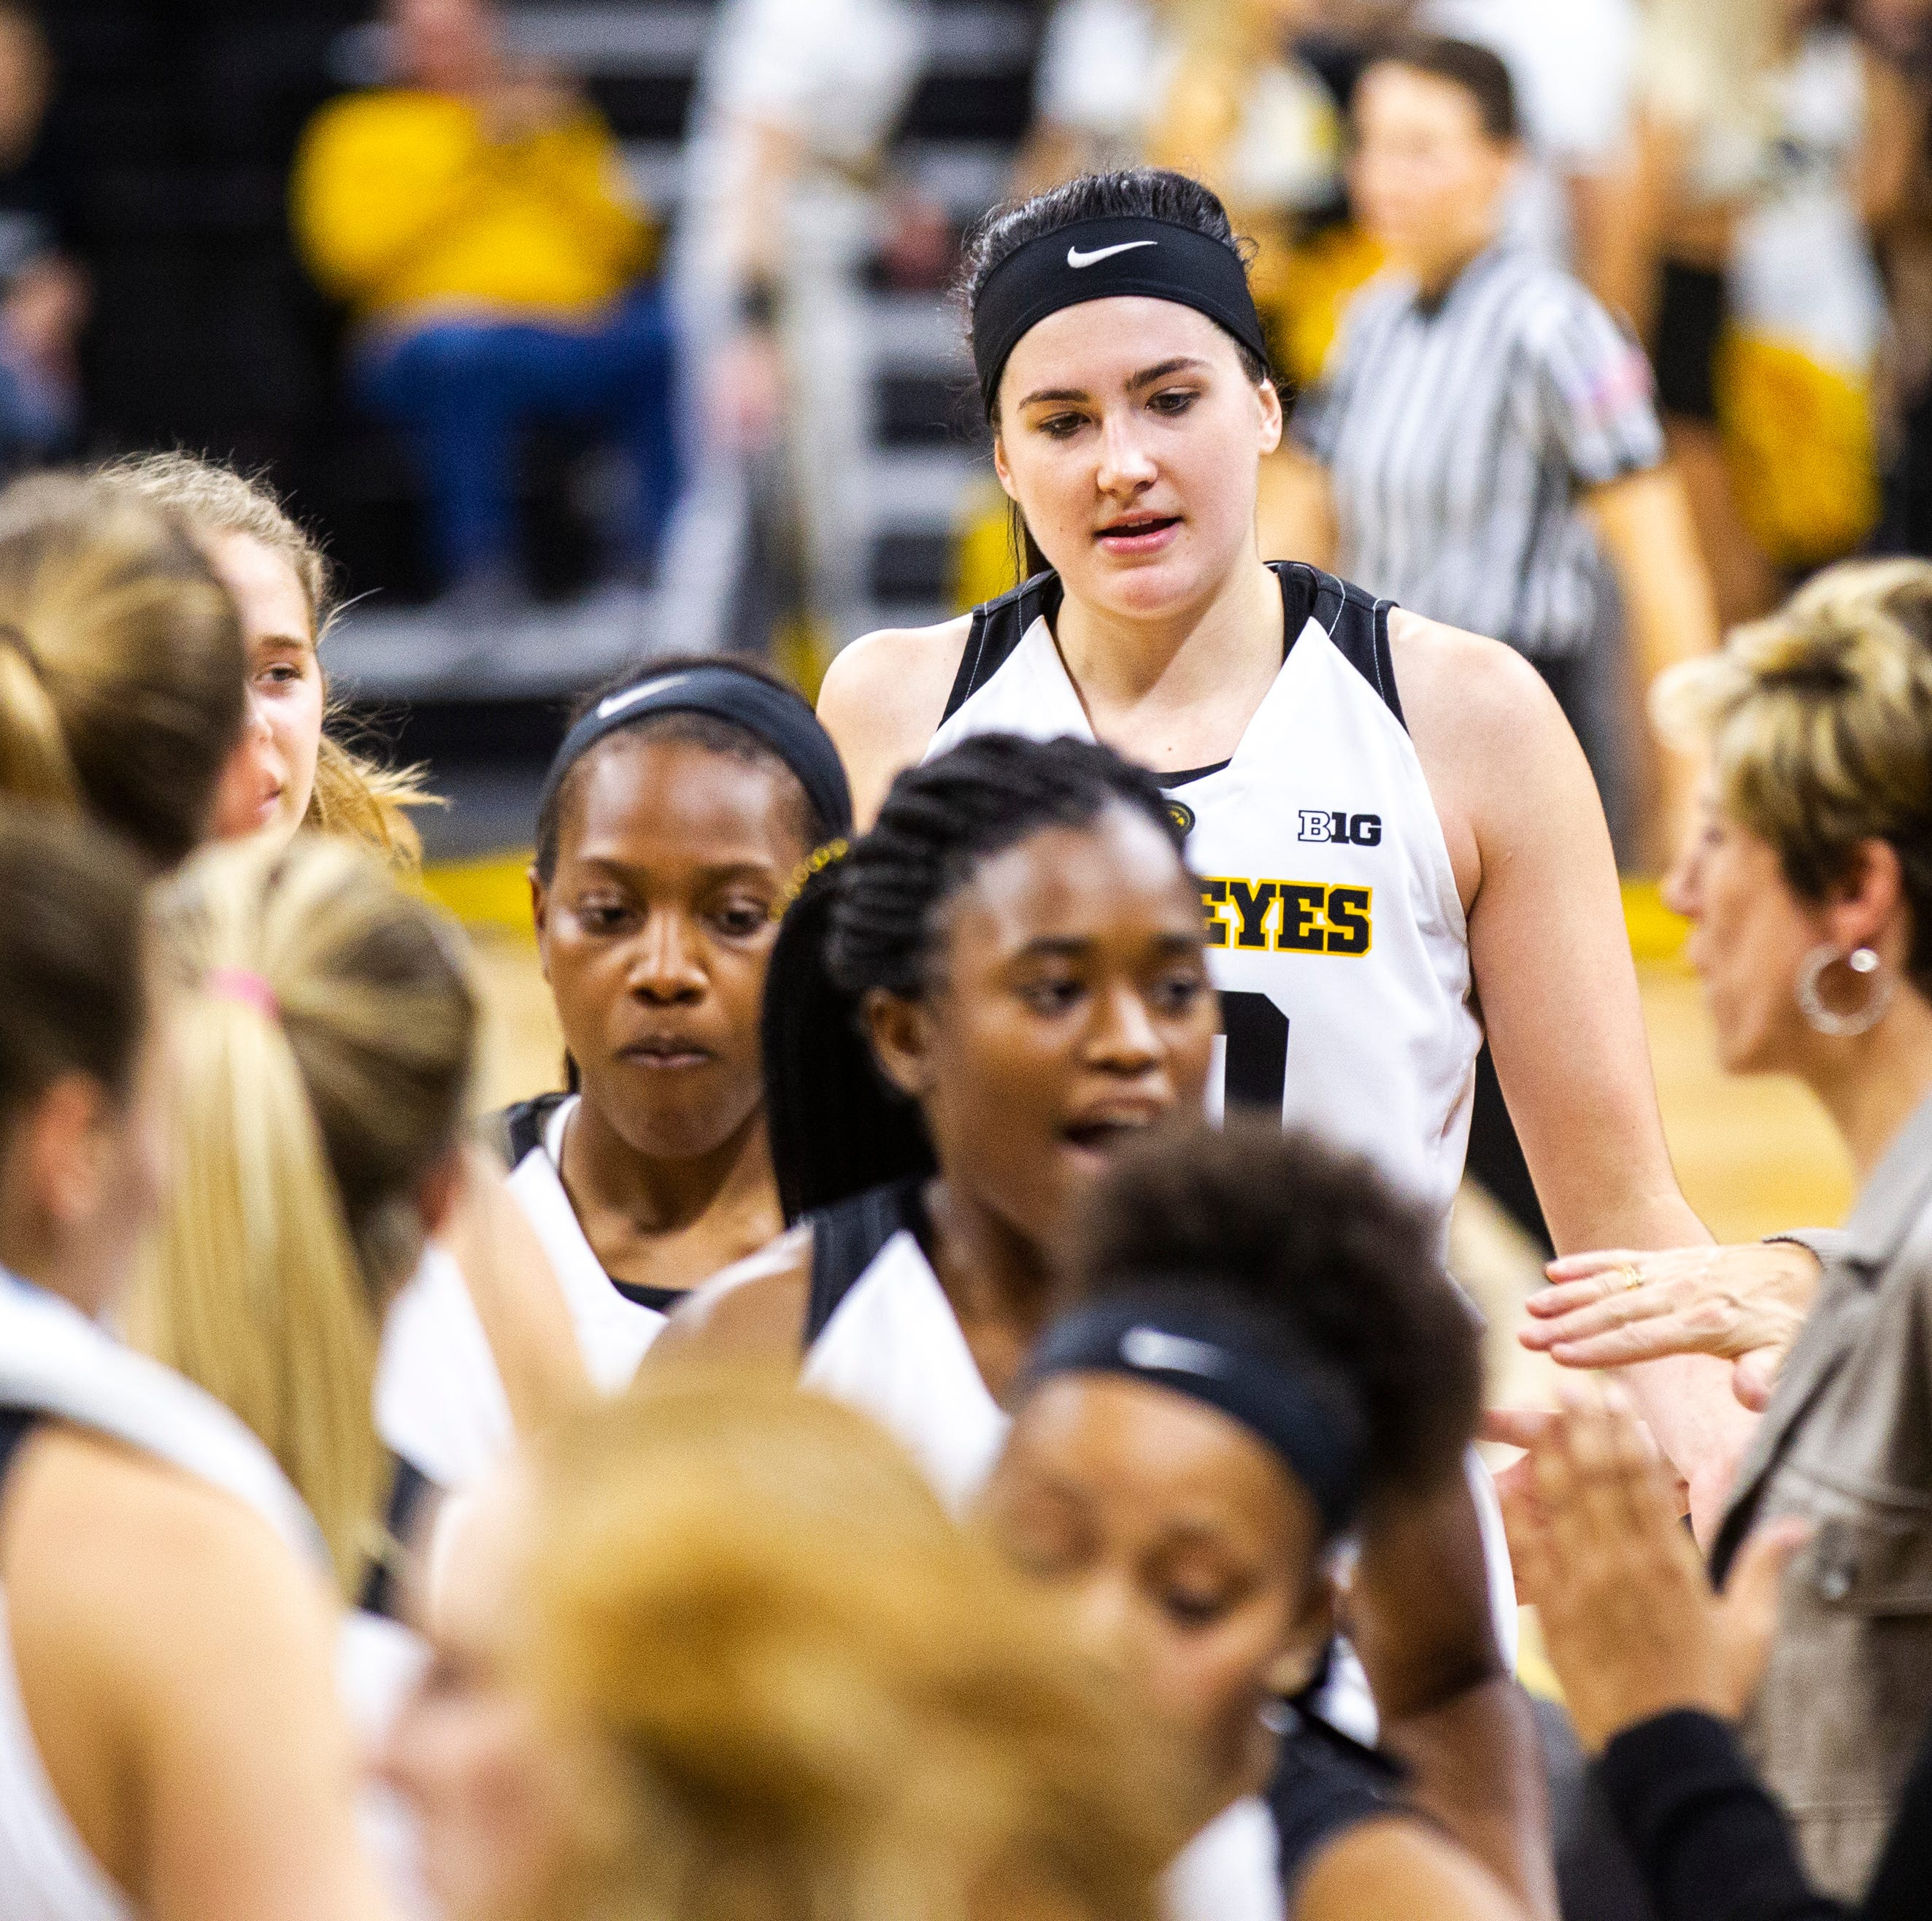 Iowa women's basketball: No. 18 Hawkeyes look to keep momentum, home success flowing